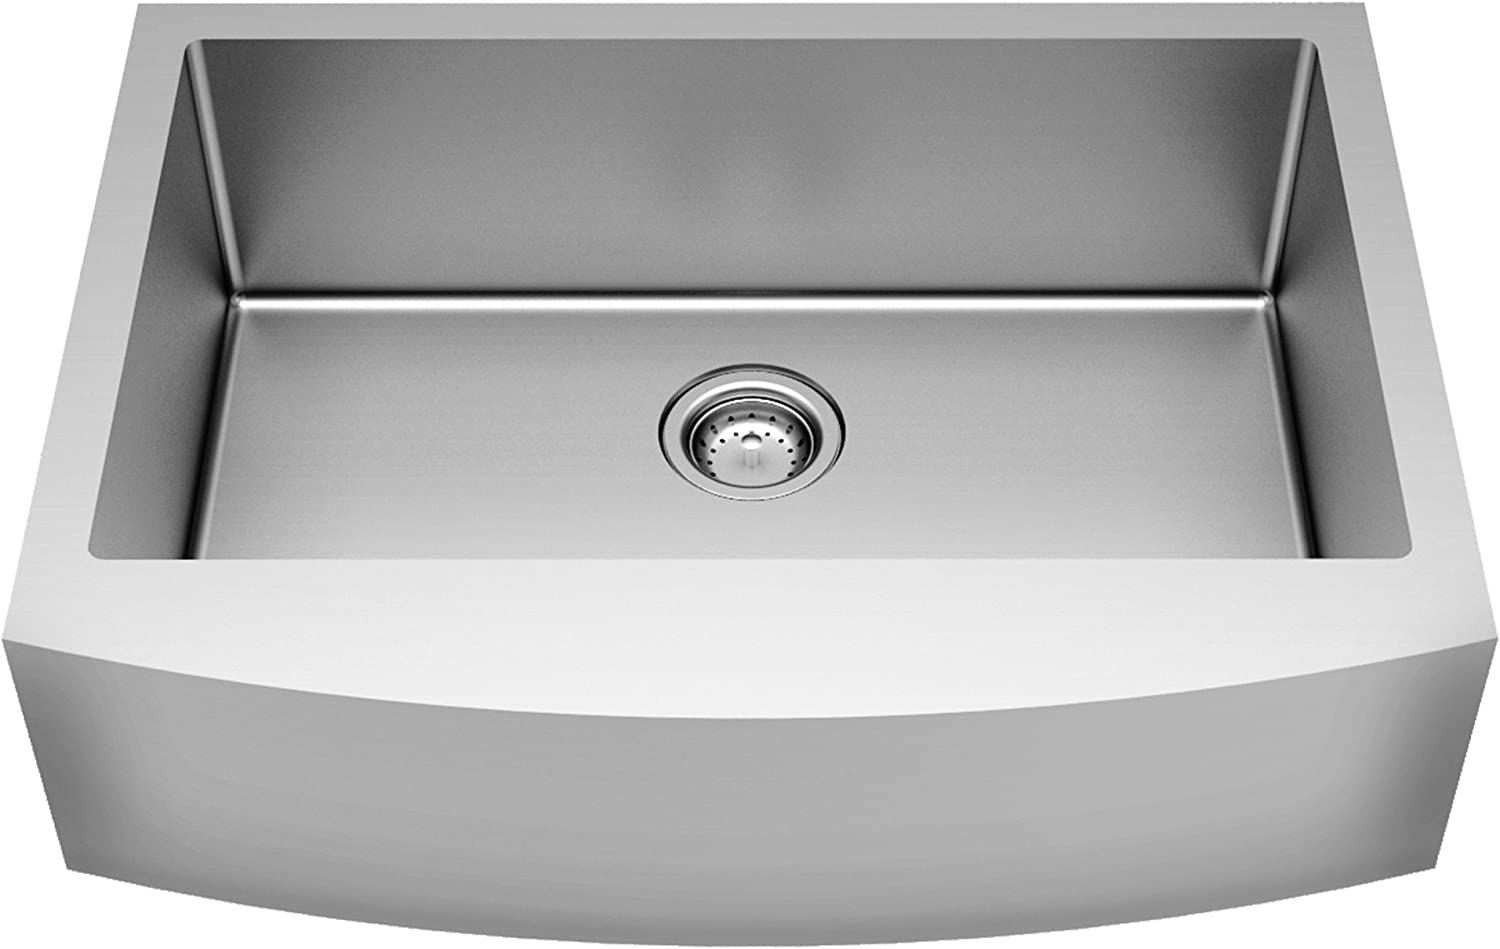 American Standard 18sb 9302200a 075 30 X 22 Pekoe Apron Sink With Grid And Drain Stainless Steel